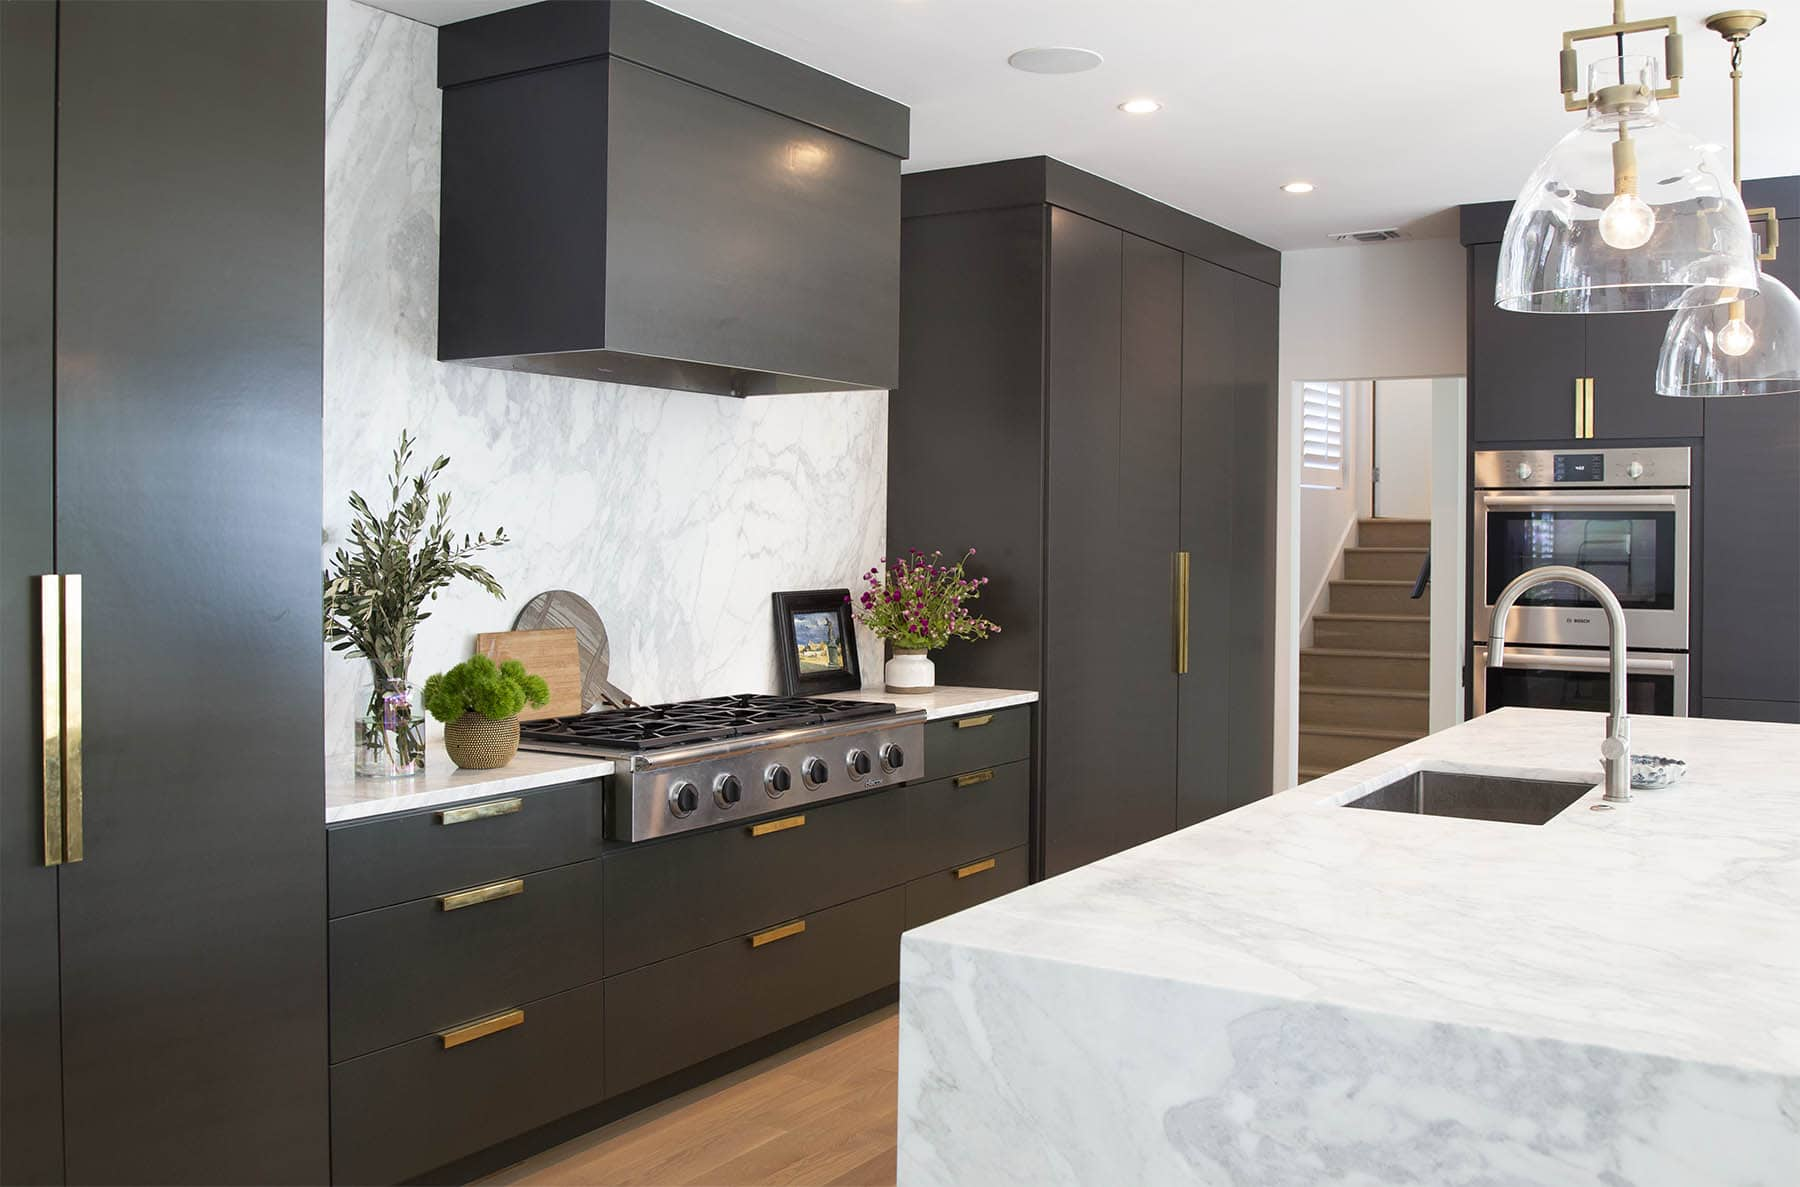 black-kitchen-cabinets-in-benjamin-moore-wrought-iron-paper-moon-painting-austin-tx